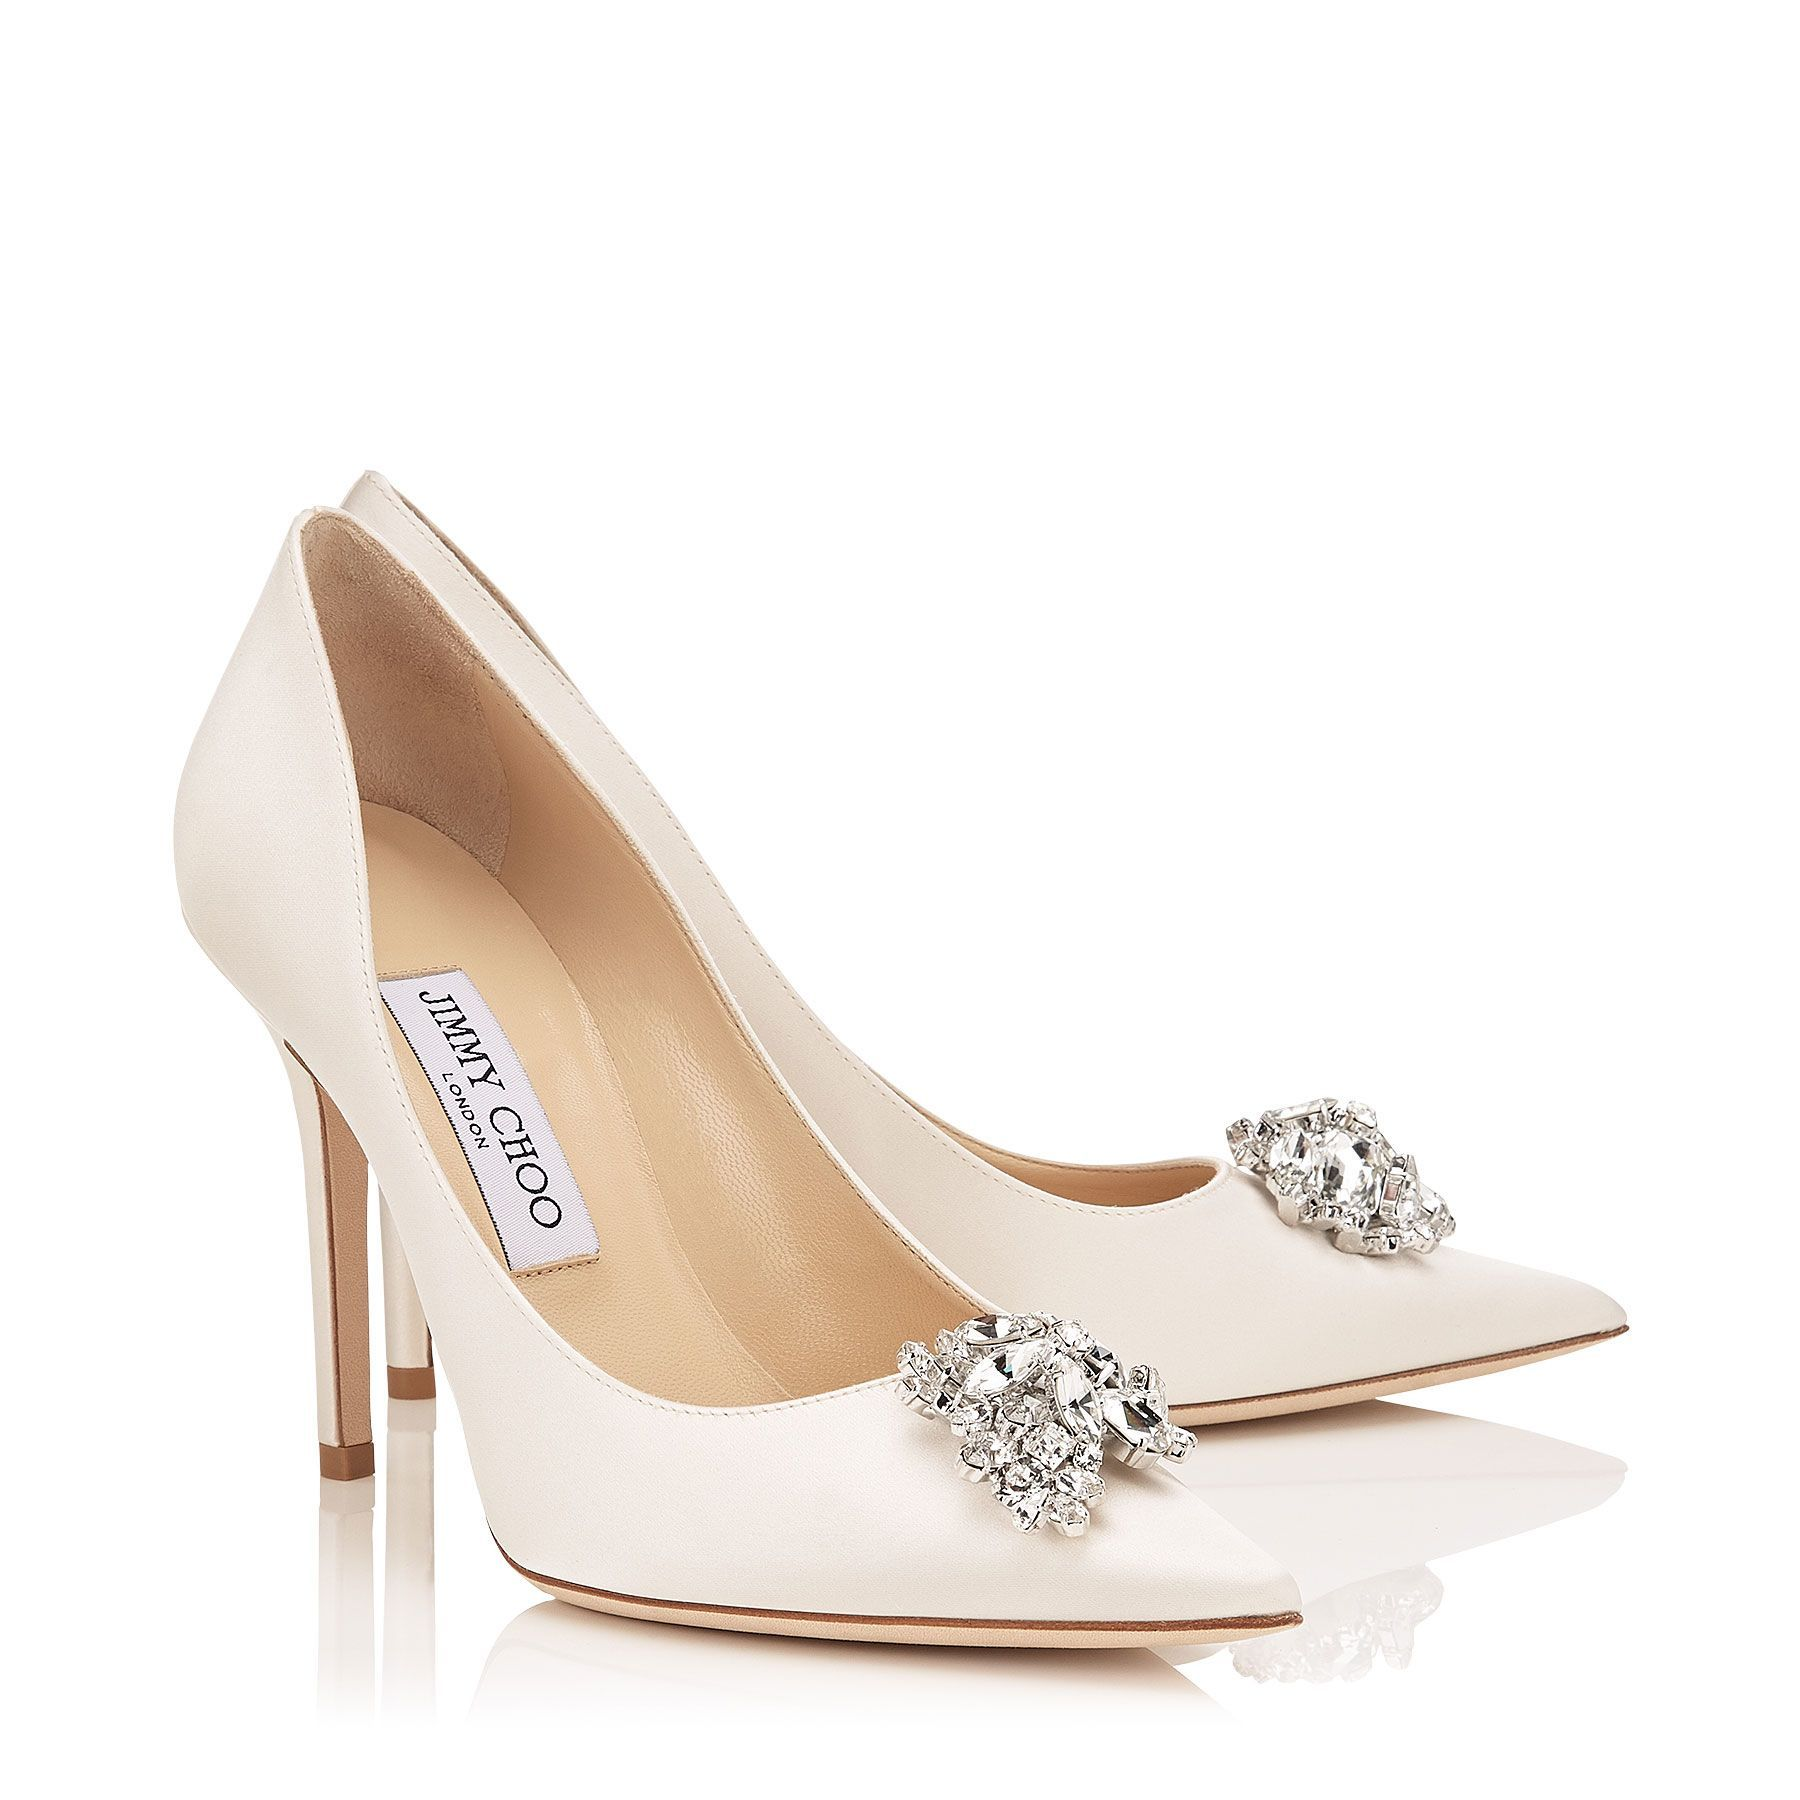 Ivory Satin Pointy Toe Pumps With Crystal Detail Abel Bridal Collection Jimmy Choo Shoes Ivory Bridal Shoes Sparkly Wedding Shoes Bridal Shoes